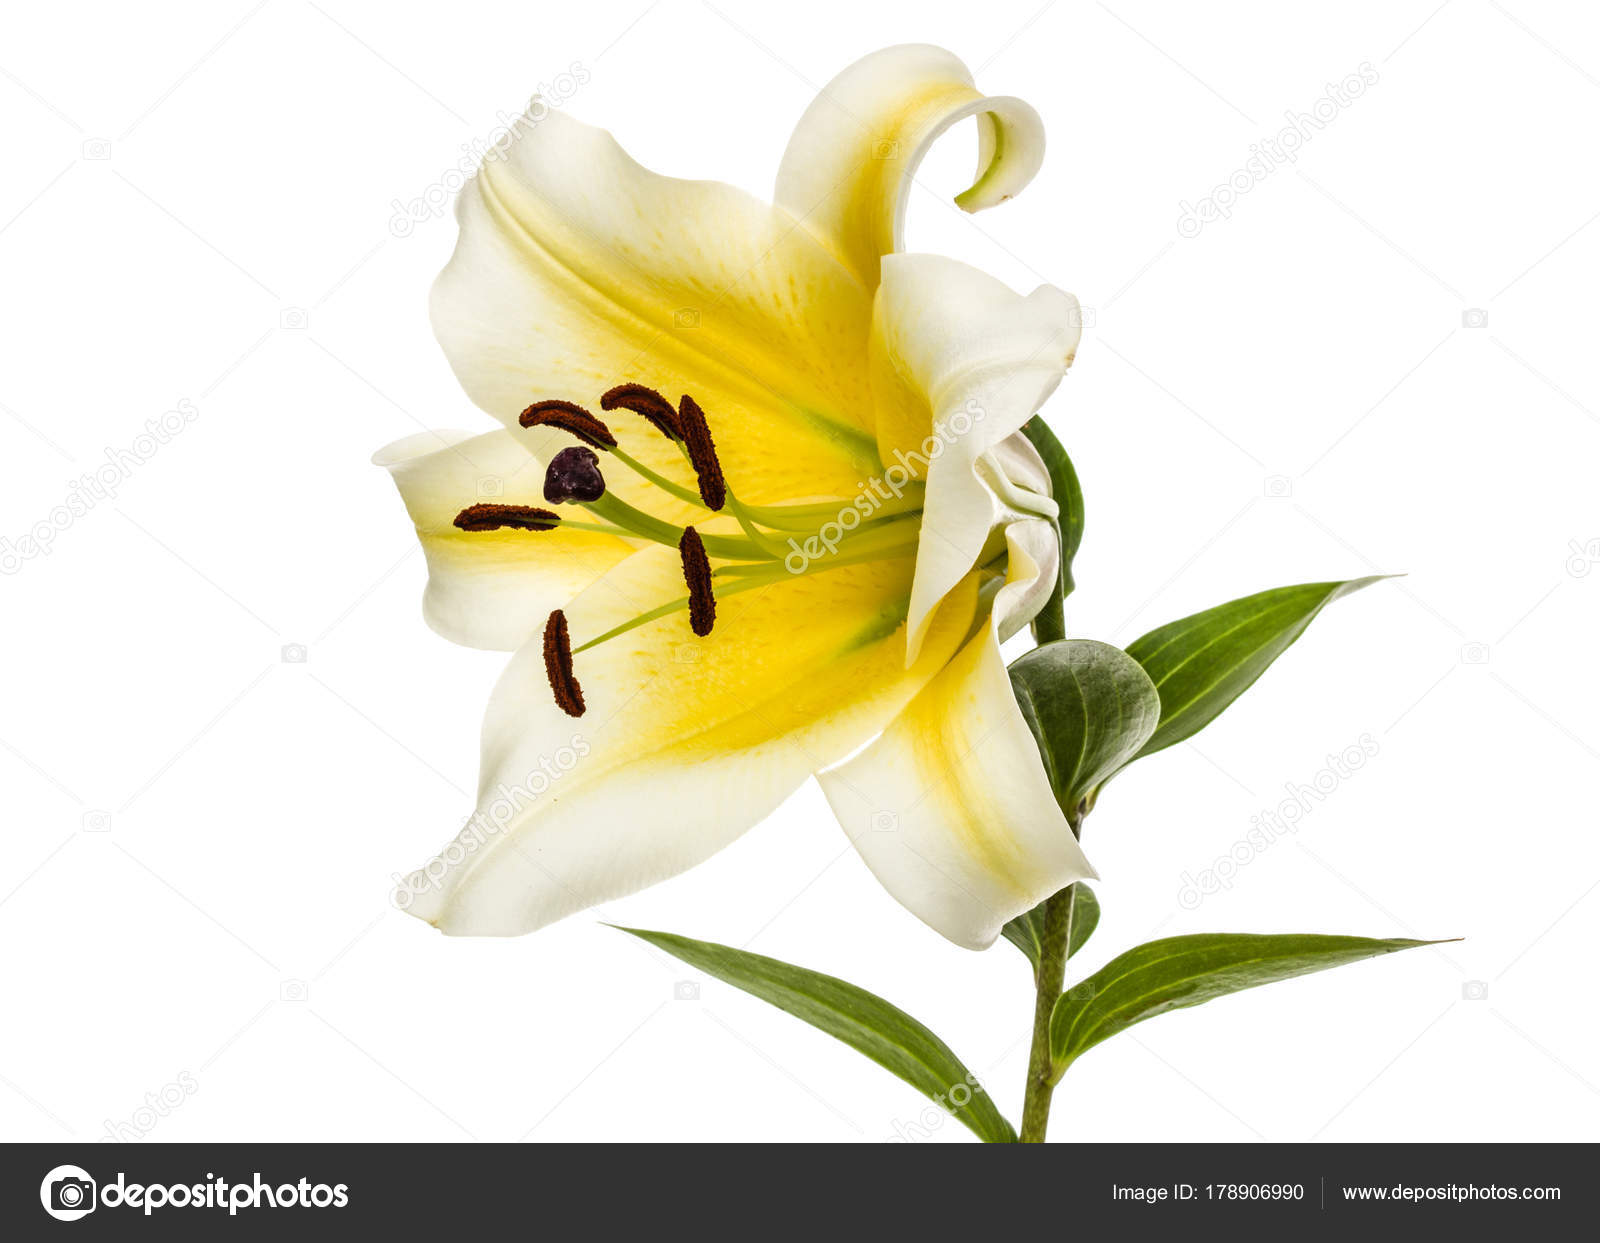 Flower of yellow oriental lily isolated on white background stock flower of yellow oriental lily isolated on white background stock photo izmirmasajfo